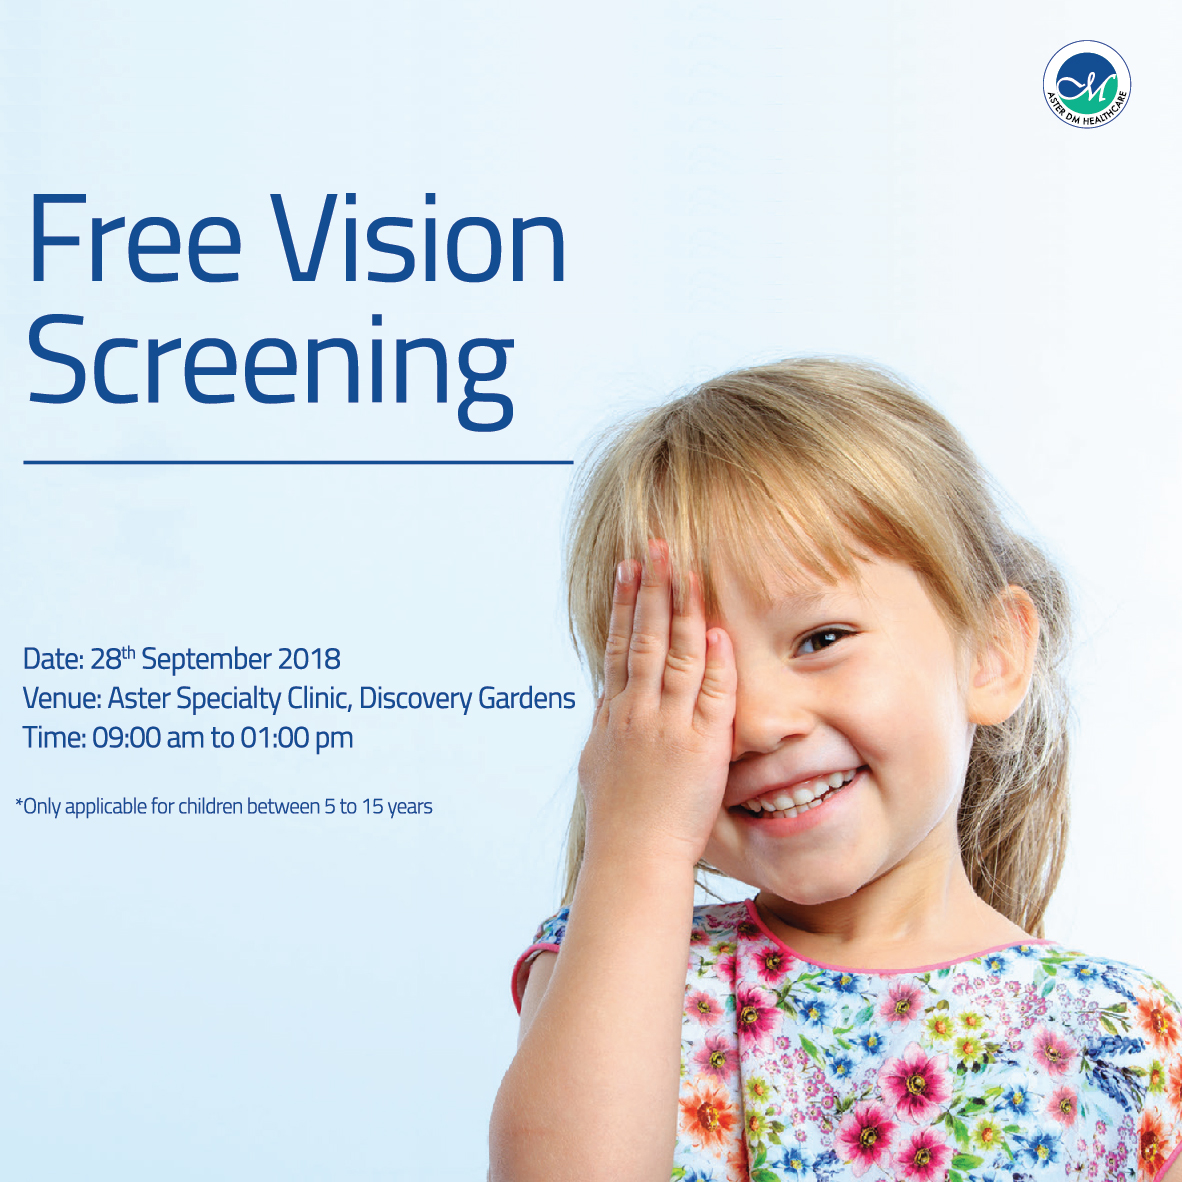 Free Vision Screening coupon